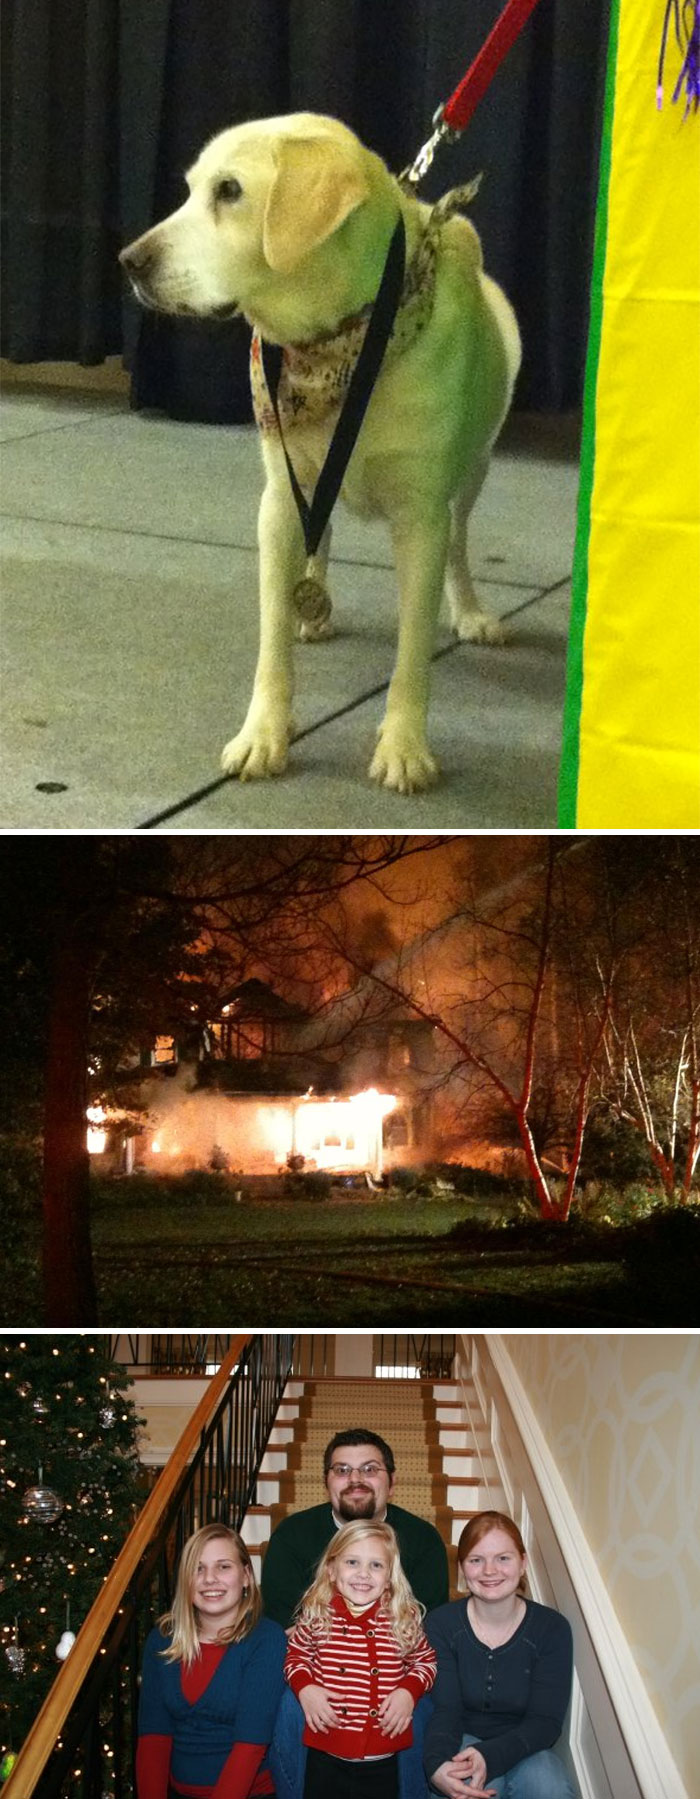 Our Blind Dog Molly Saved The Lives Of 7 People, 2 Dogs, And 4 Cats From Fire